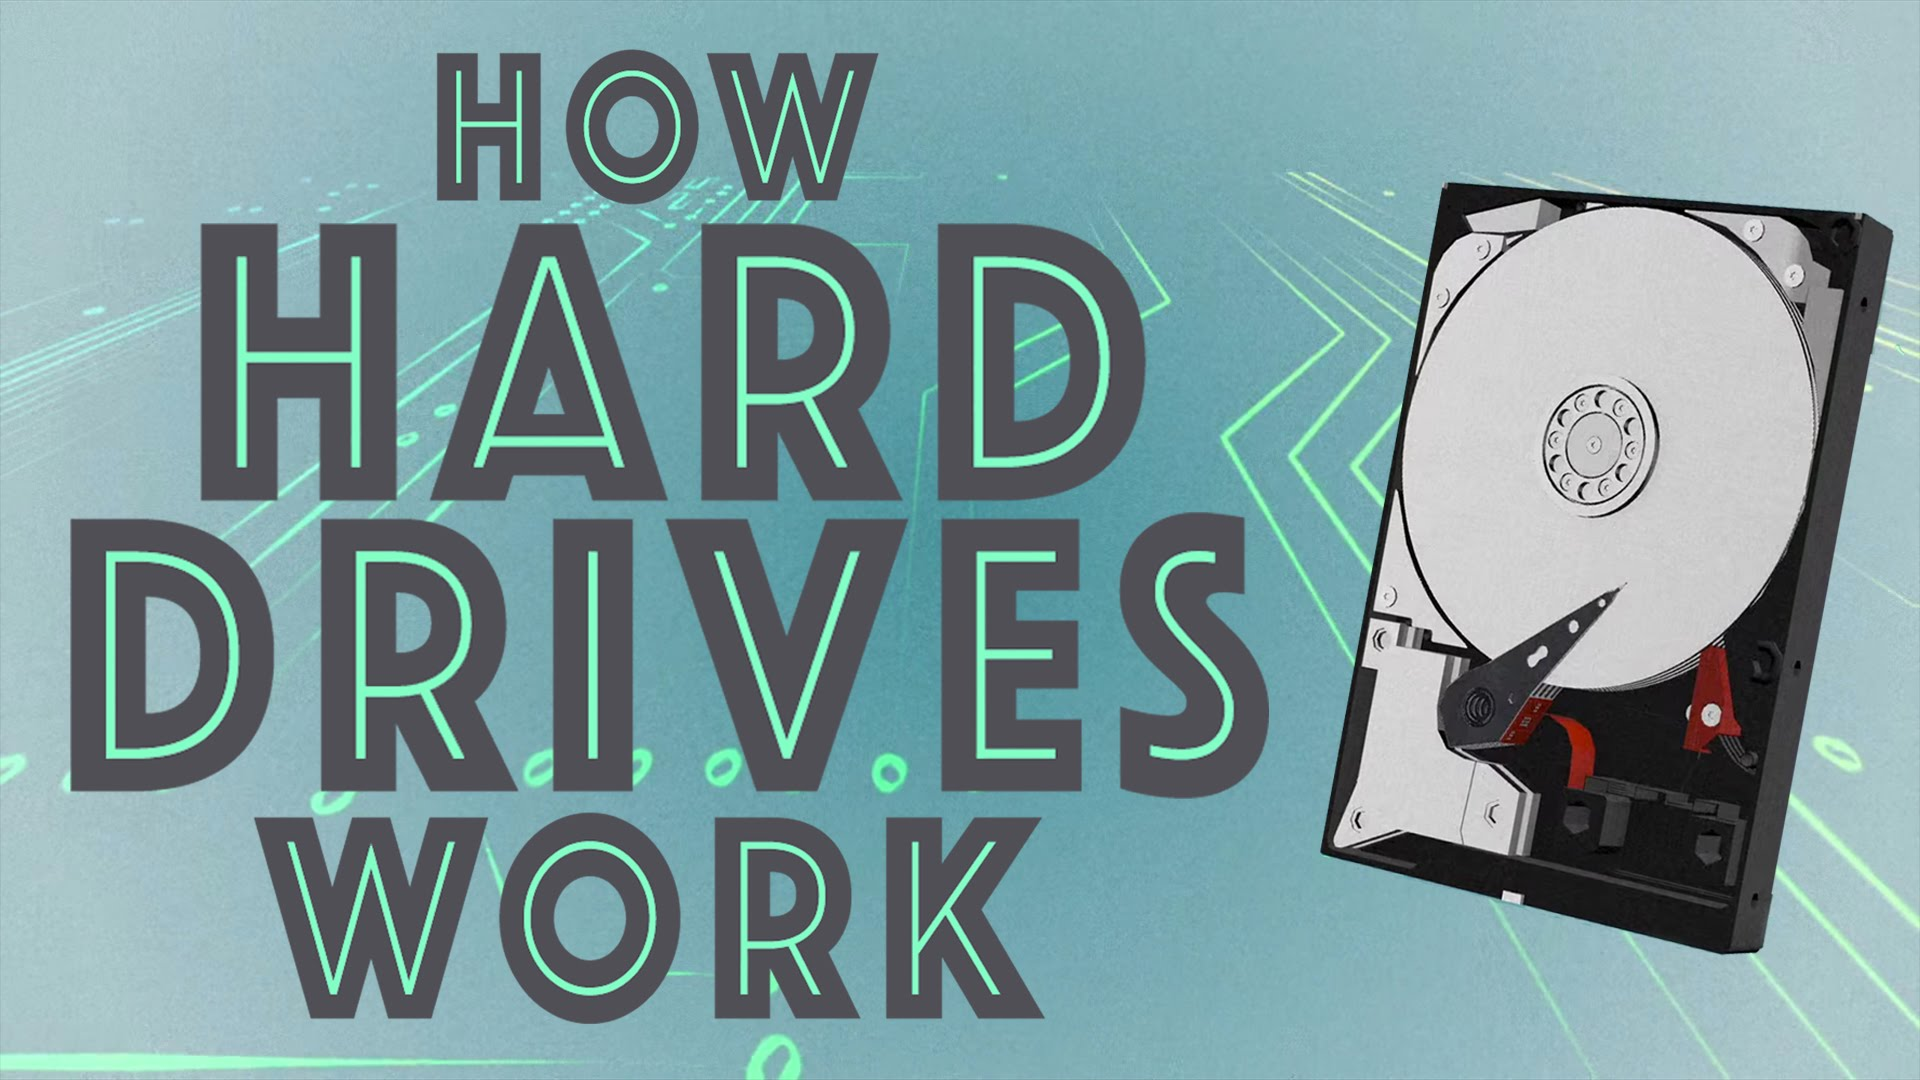 How do hard drives work?